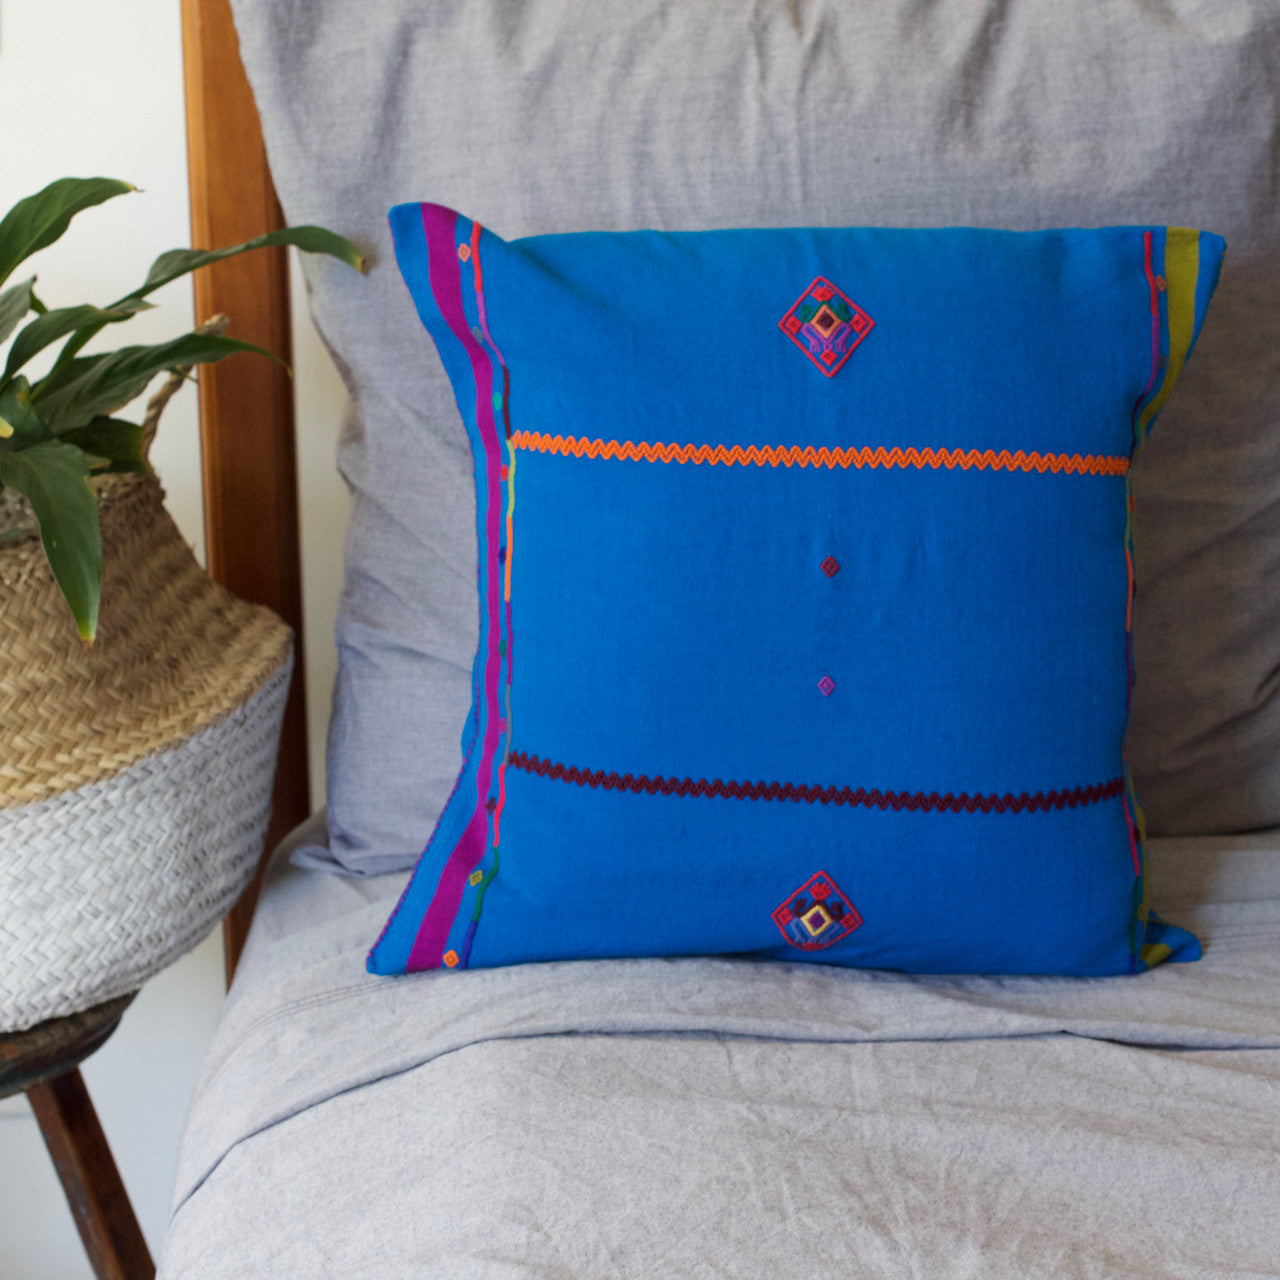 Sapo Cushion - Cielo Collective Light Blue Mexico Guatemala Handmade Ethical Noosa Australia